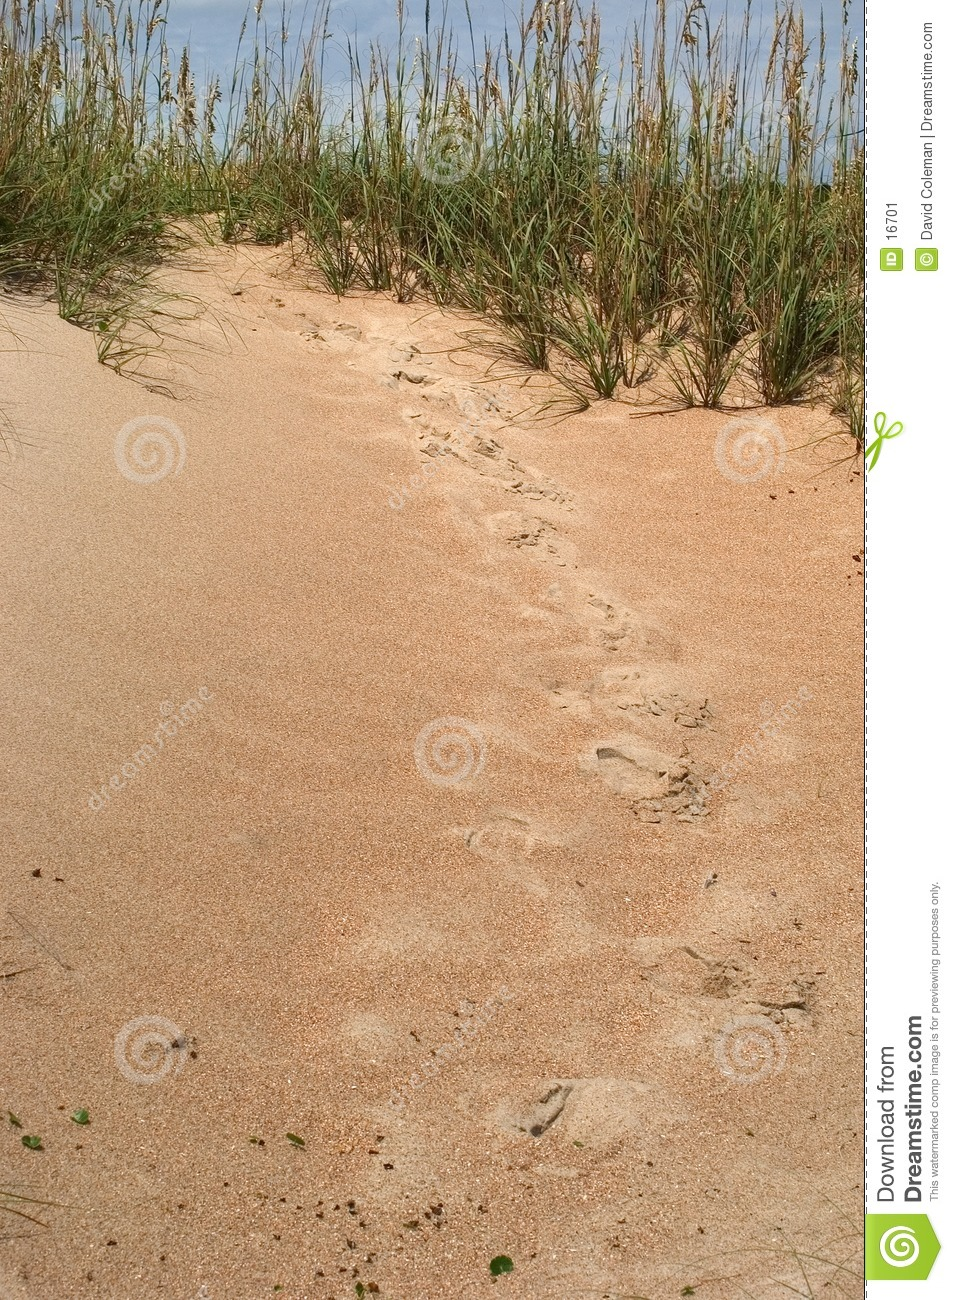 Tracks in the Dunes